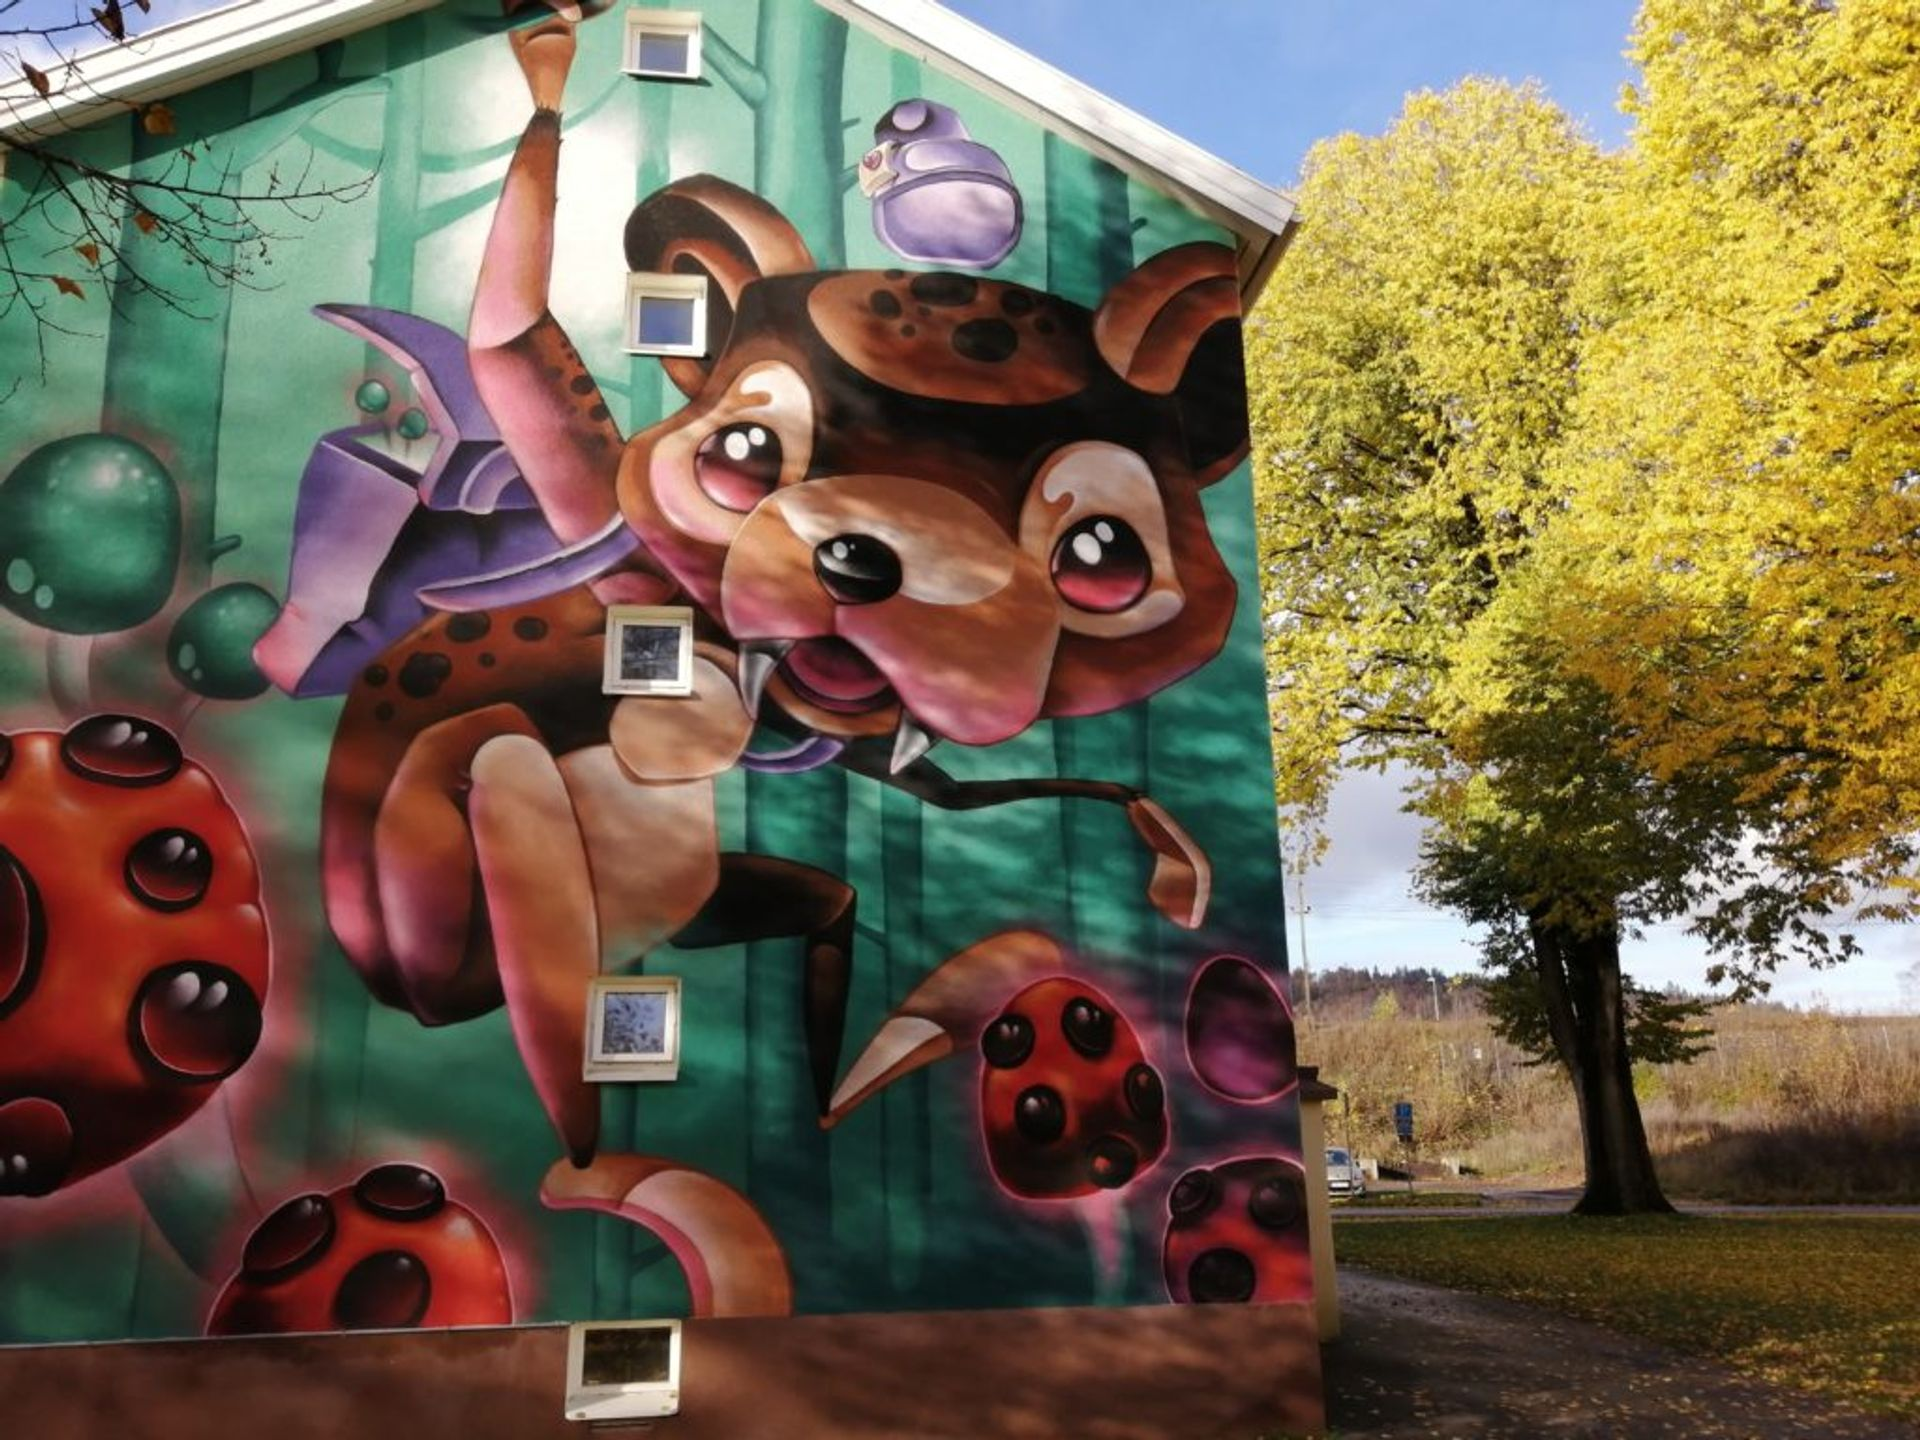 Colourful mural of cute and playful animalistic creature on the side of a residential building.